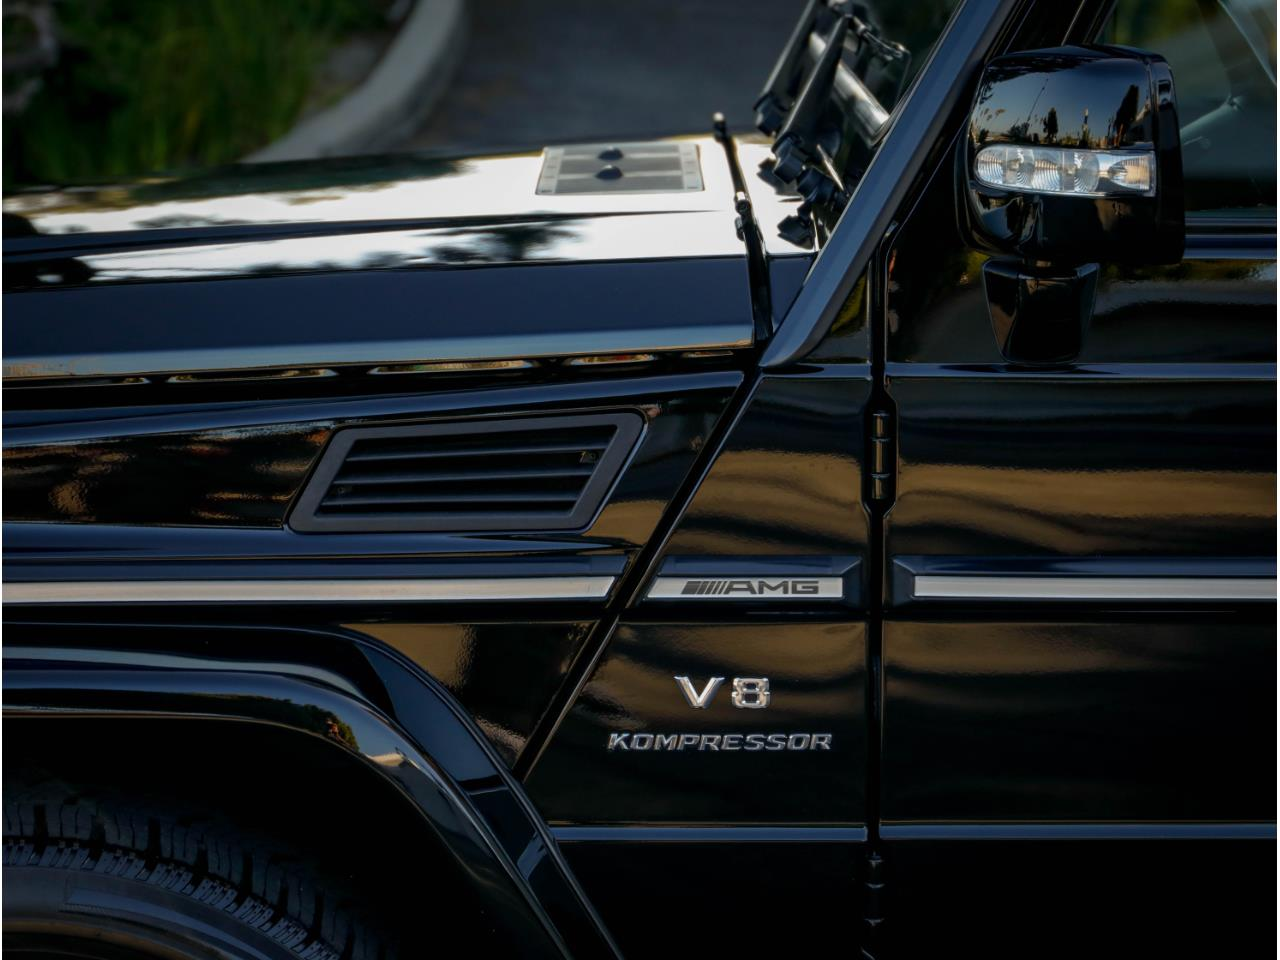 2011 Mercedes-Benz G550 for sale in Marina Del Rey, CA – photo 17